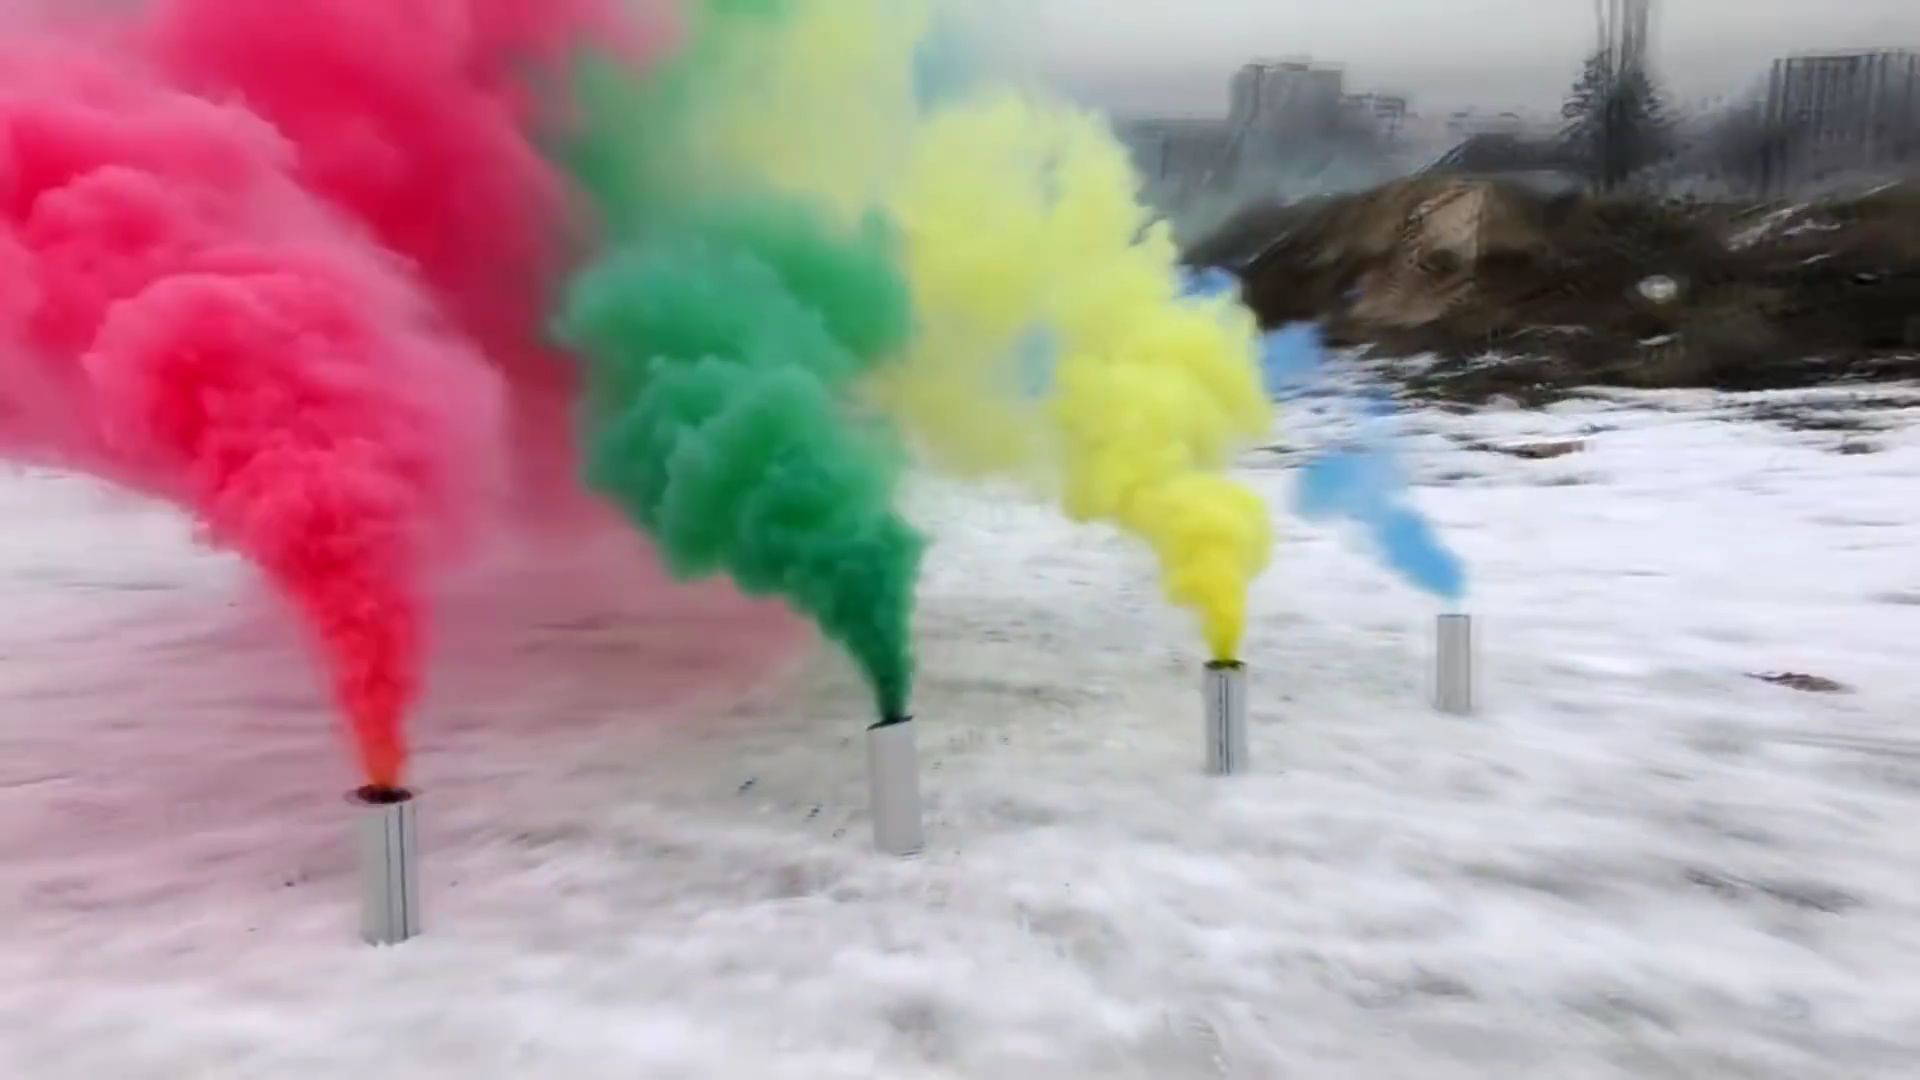 Make Different Colored Smoke Bombs: 5 Steps